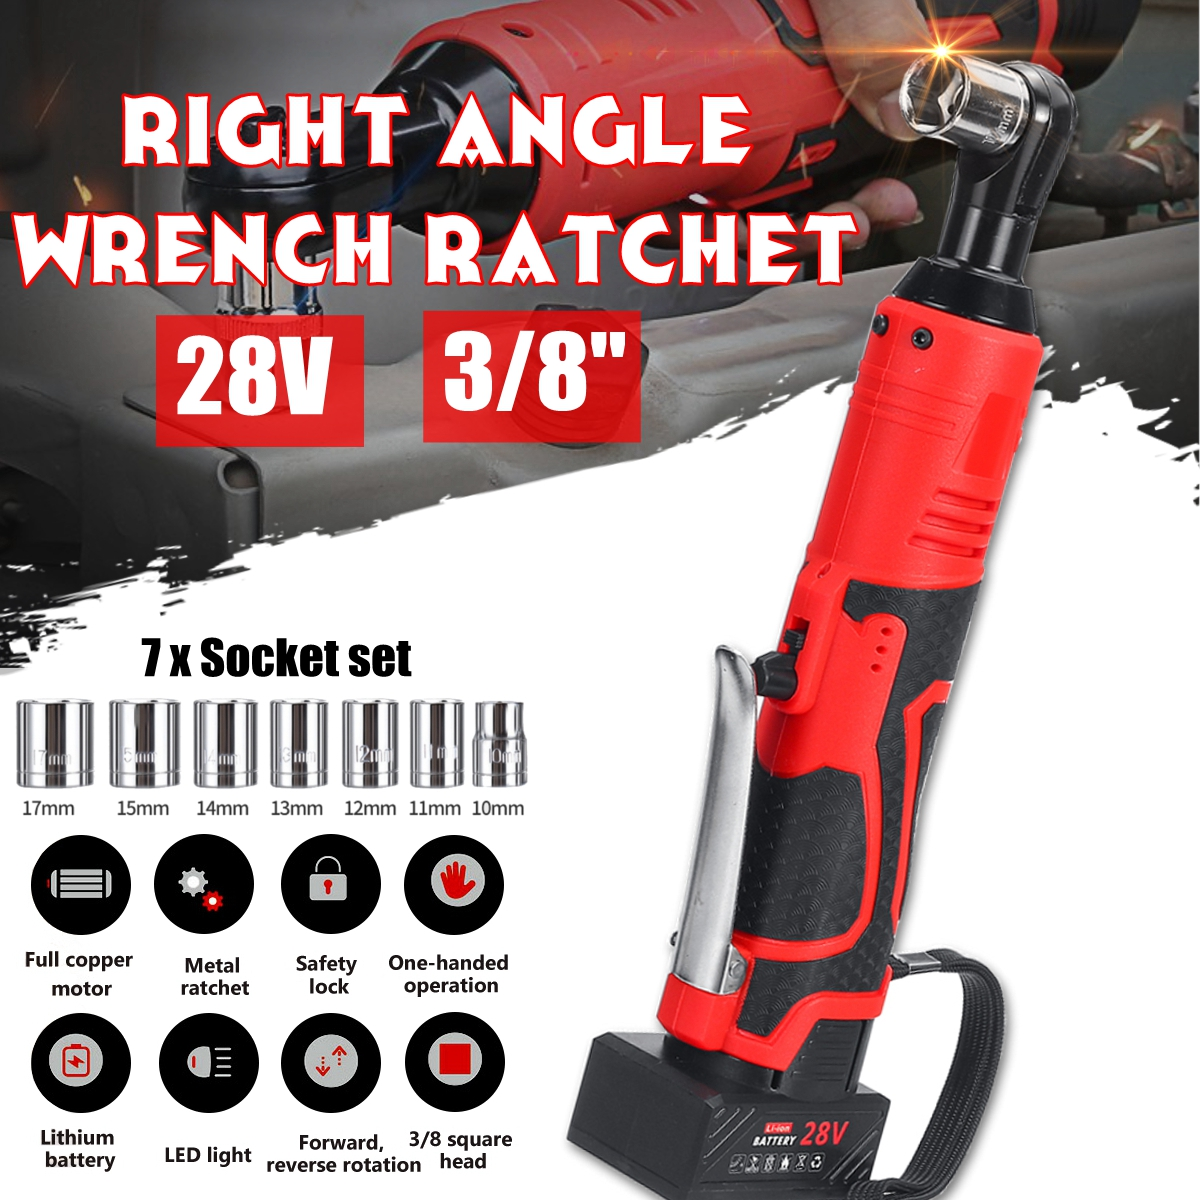 2 x 1500mAh Batteries 28V 3//8 Electric Cordless Ratchet Right Angle Wrench DIY Tool w//Reverse /& Forward Function